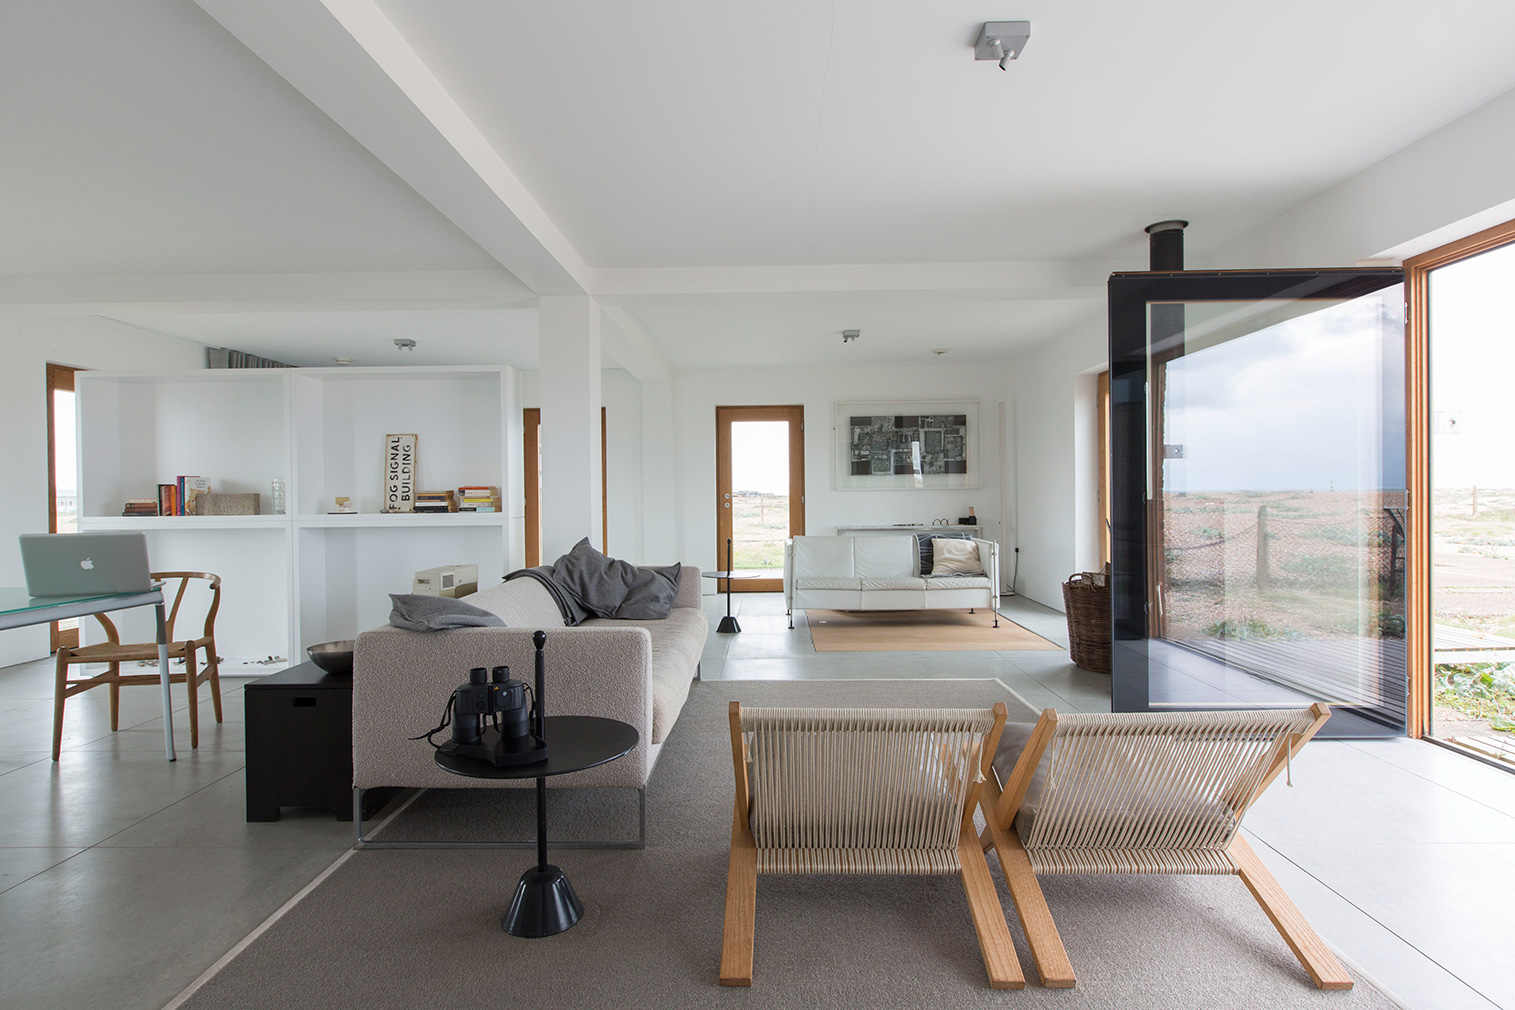 Dom stay and live architect-designed homes and vacation rentals